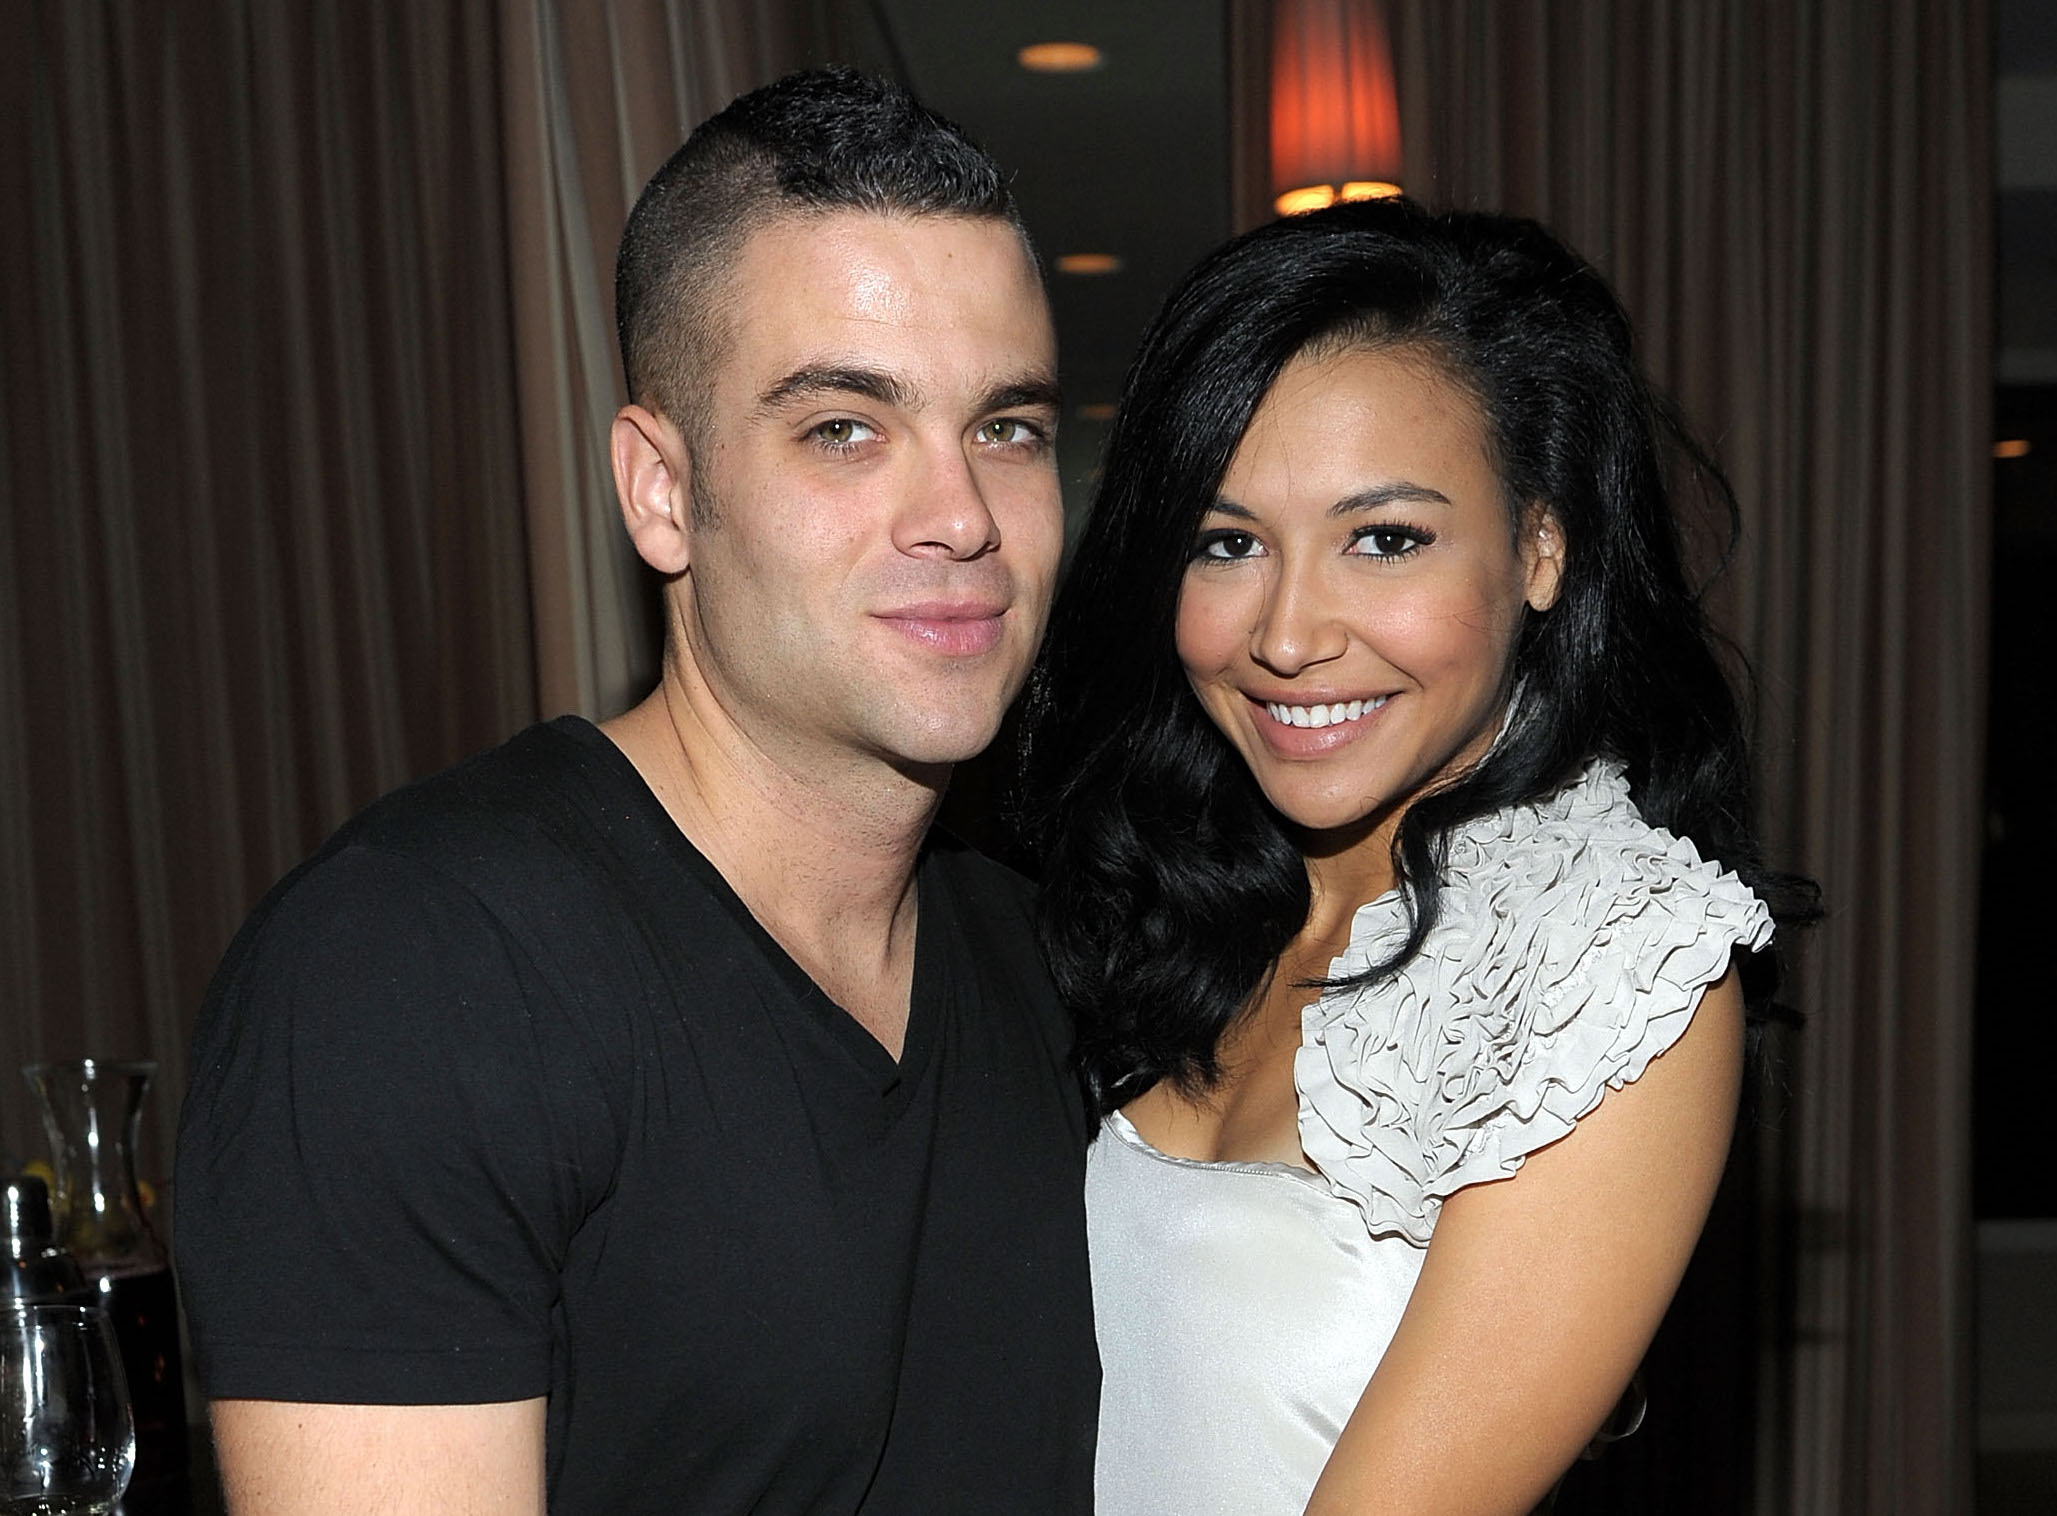 Mark salling and dating